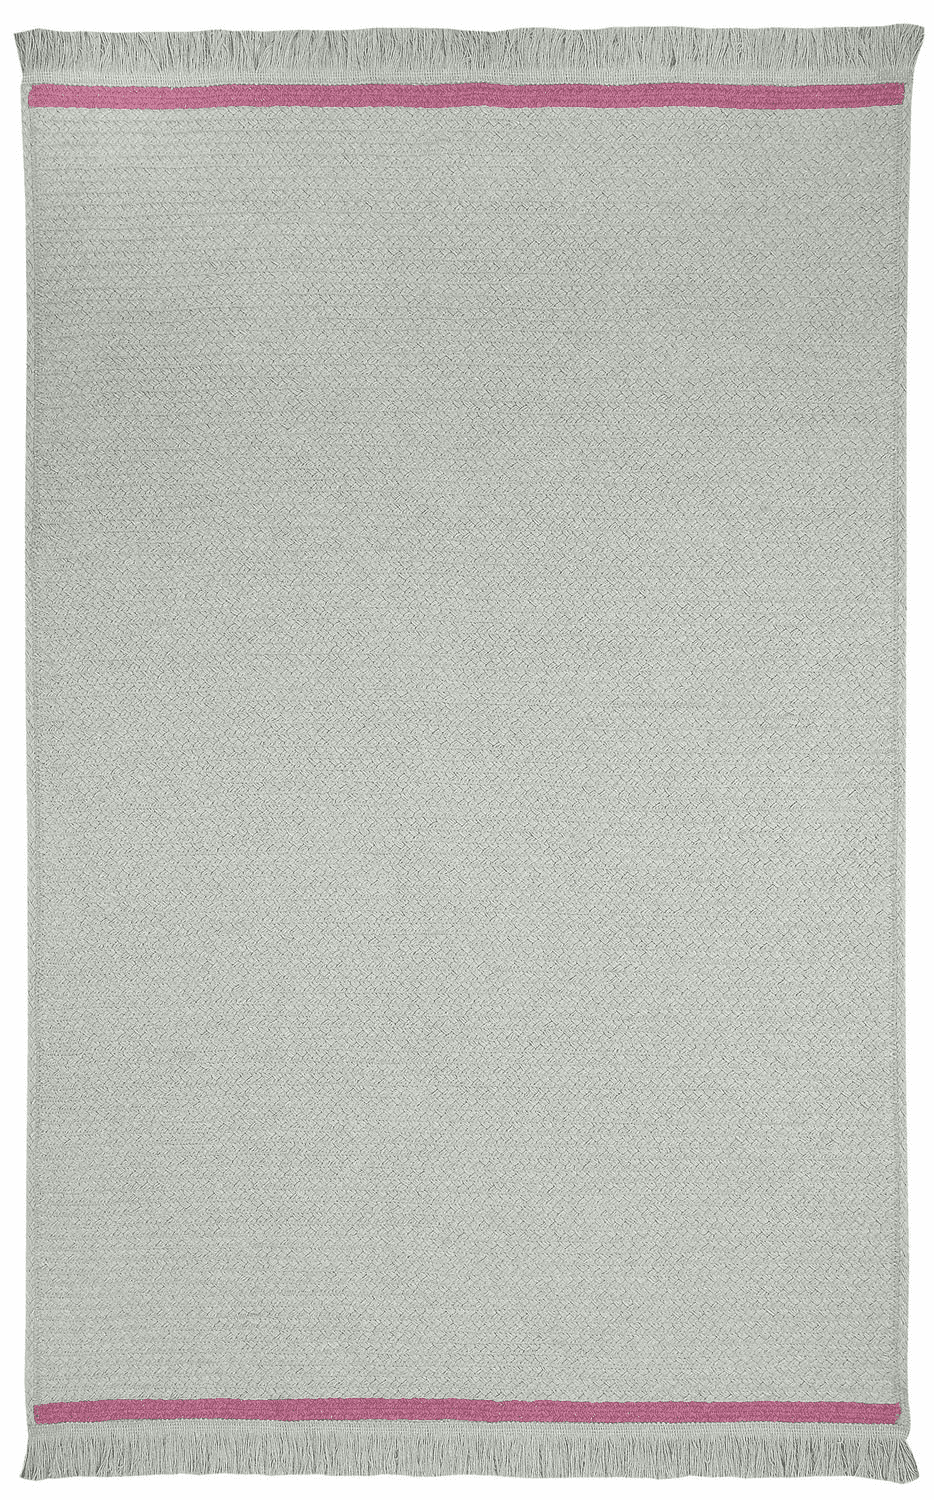 Hand-Braided Steel Grey Fuschia Rug